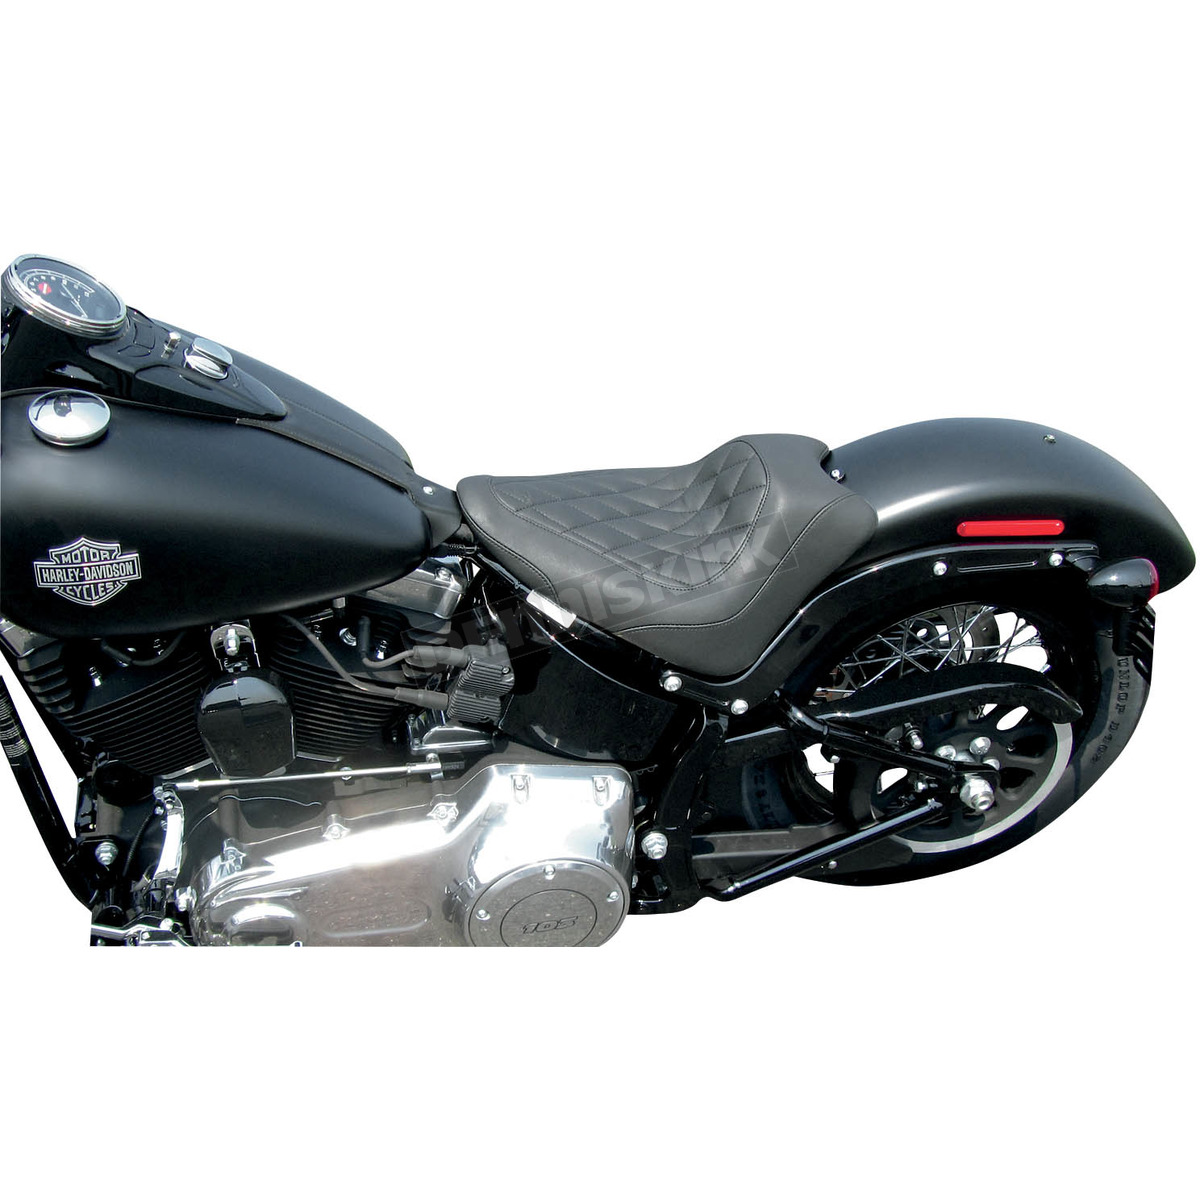 Mustang Motorcycle Seats Black Wide Tripper Solo Seat